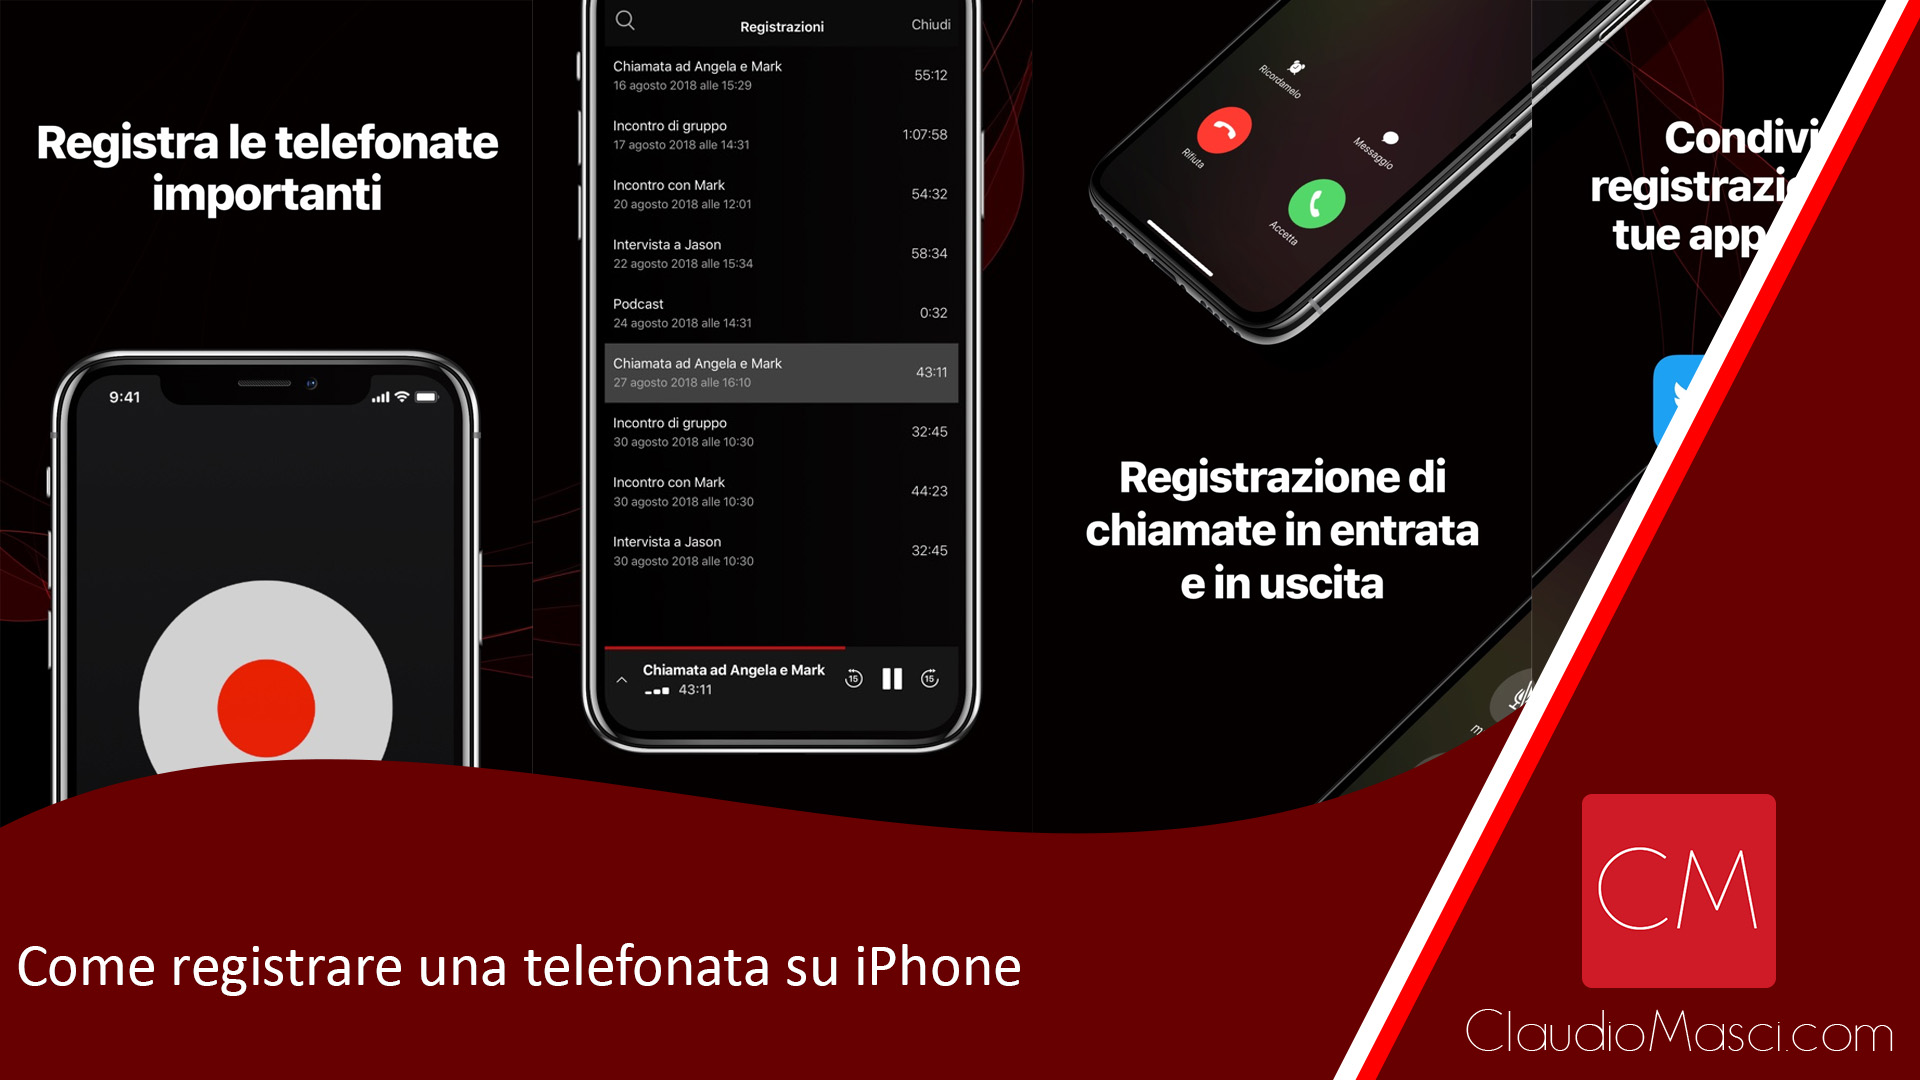 Come registrare una telefonata su iPhone